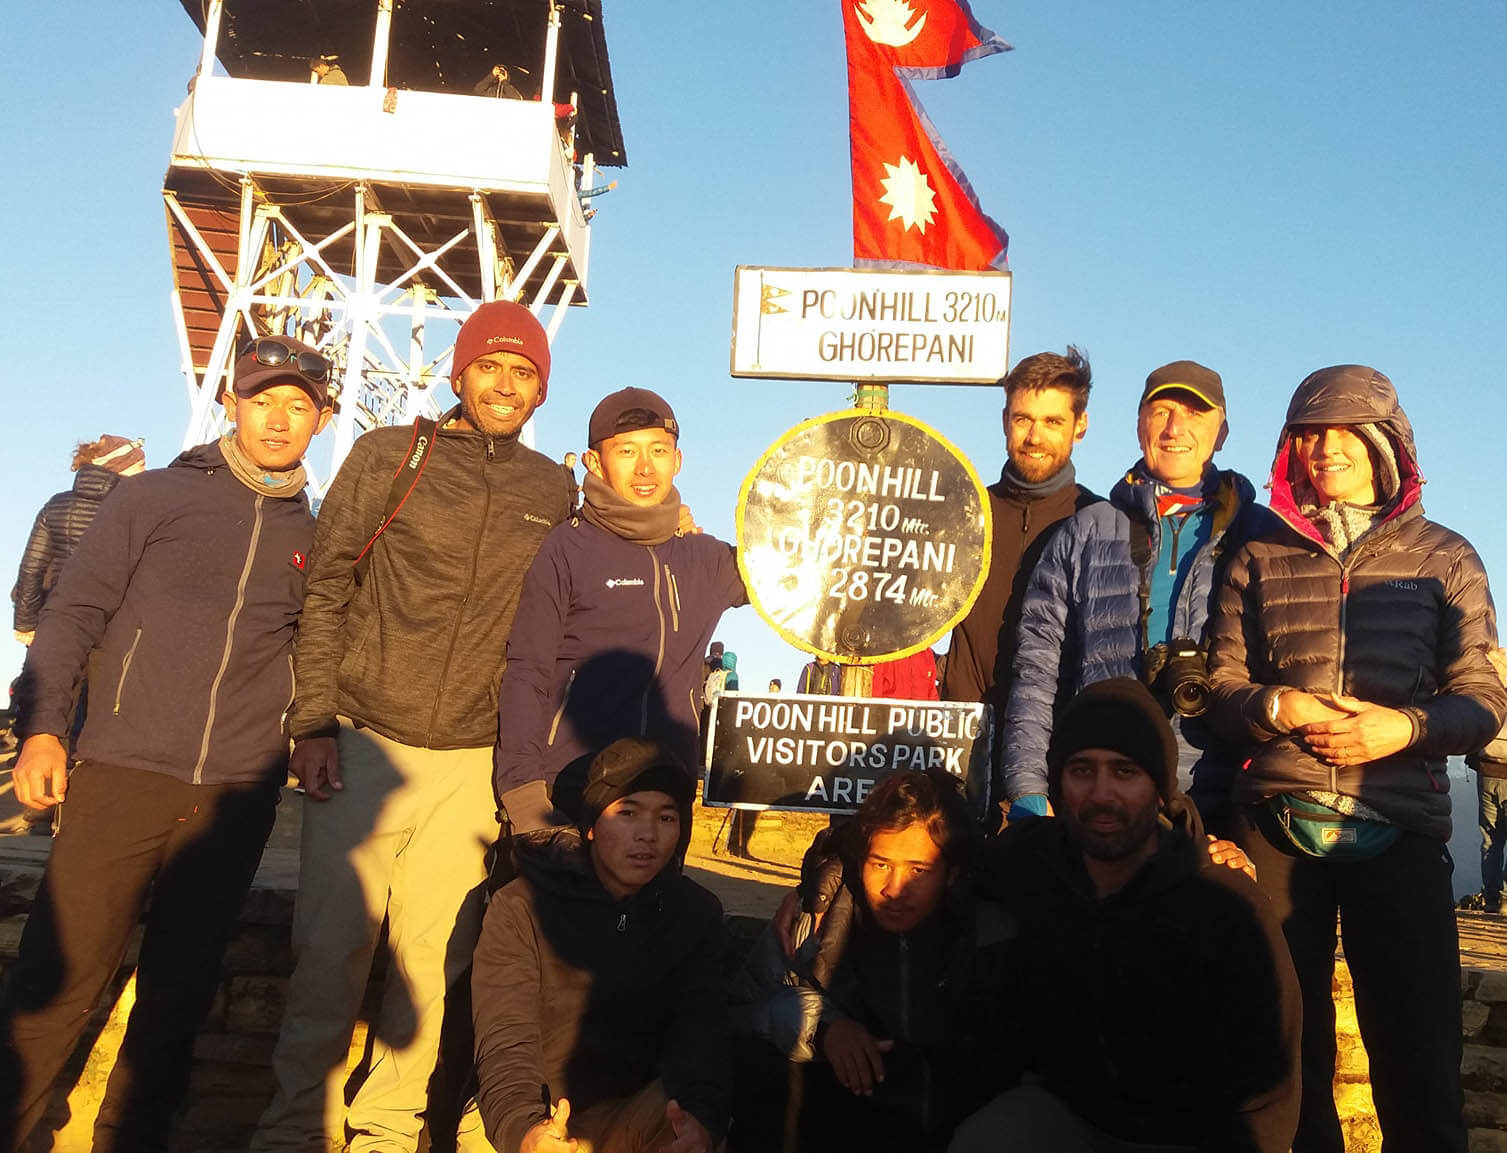 Annapurna Circuit Trekking group standing in Poon Hill 3210M.